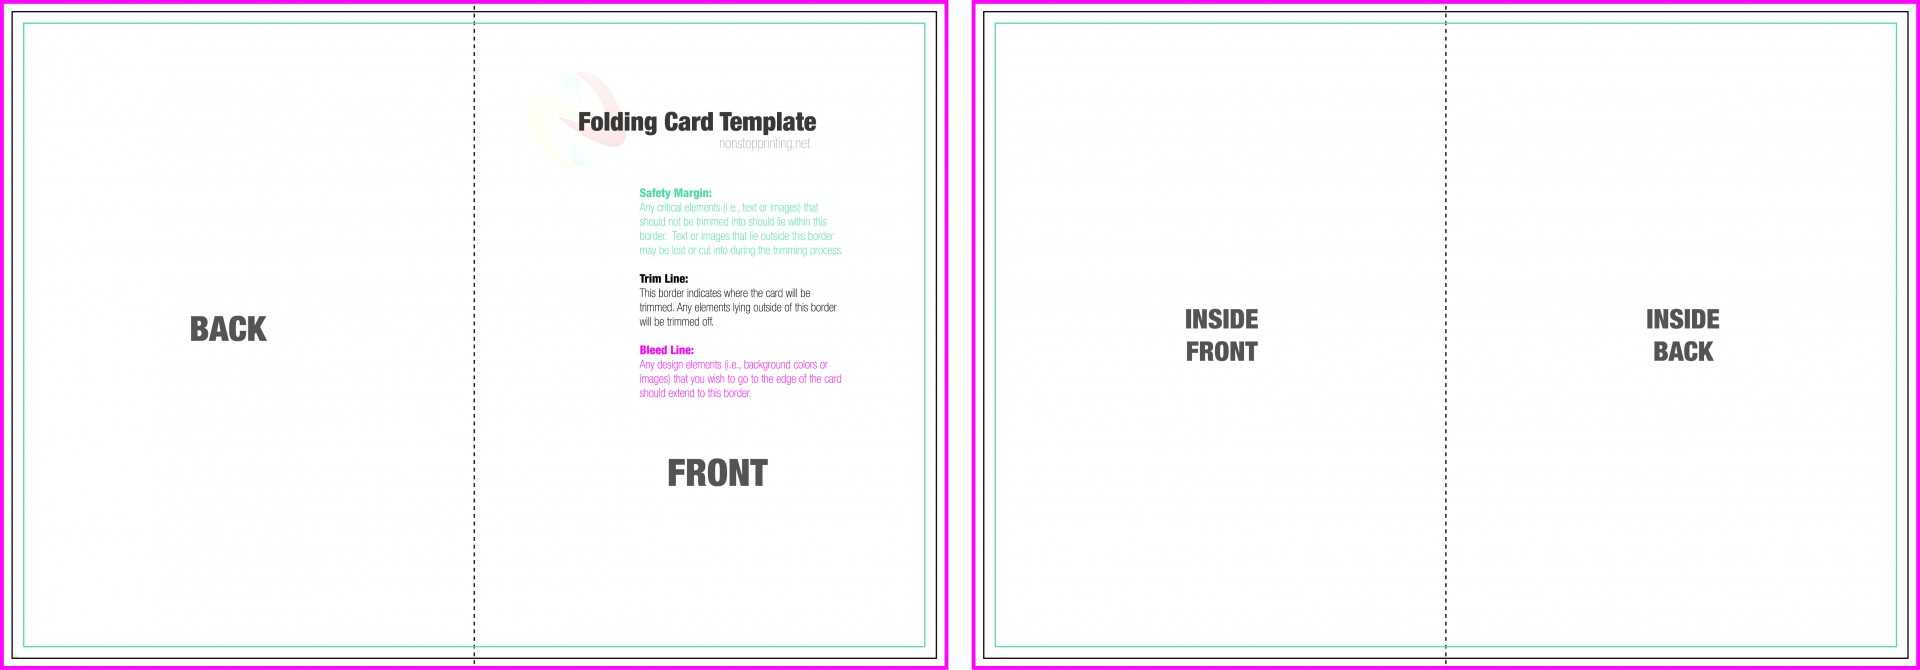 003 Free Blank Greeting Card Templates 314639 Template Ideas Throughout Fold Out Card Template